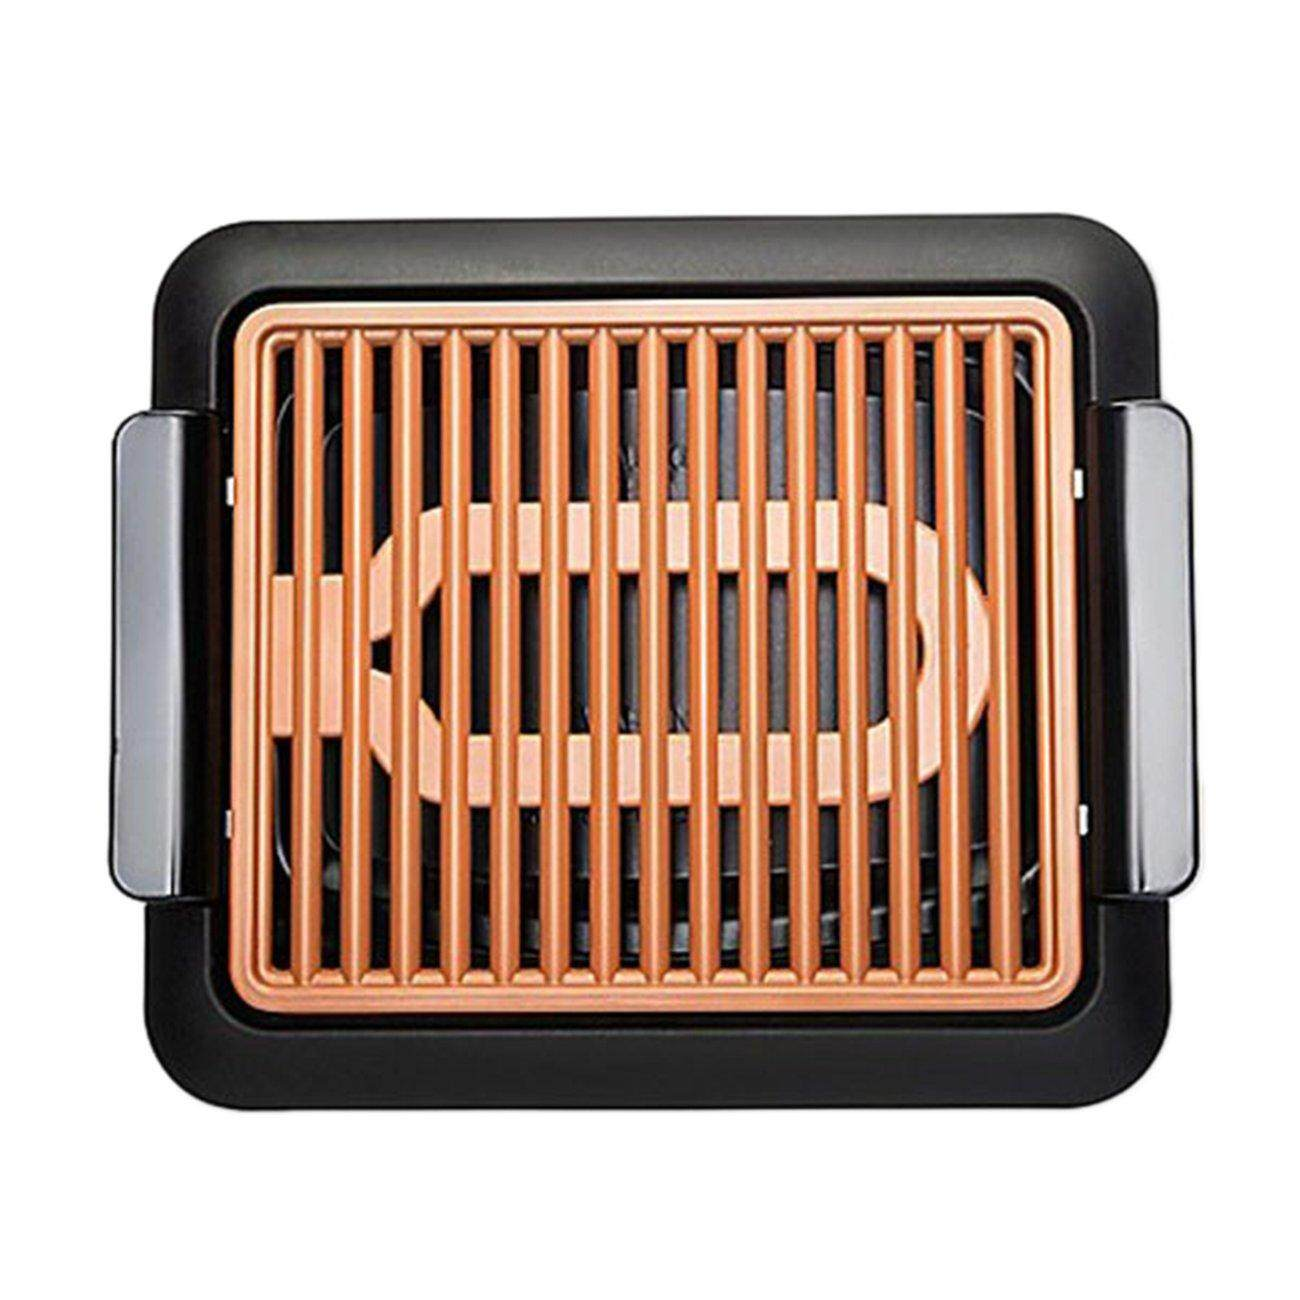 UINN Non-Stick Durable Electrothermal barbecue plate Fast BBQ Smokeless Grill